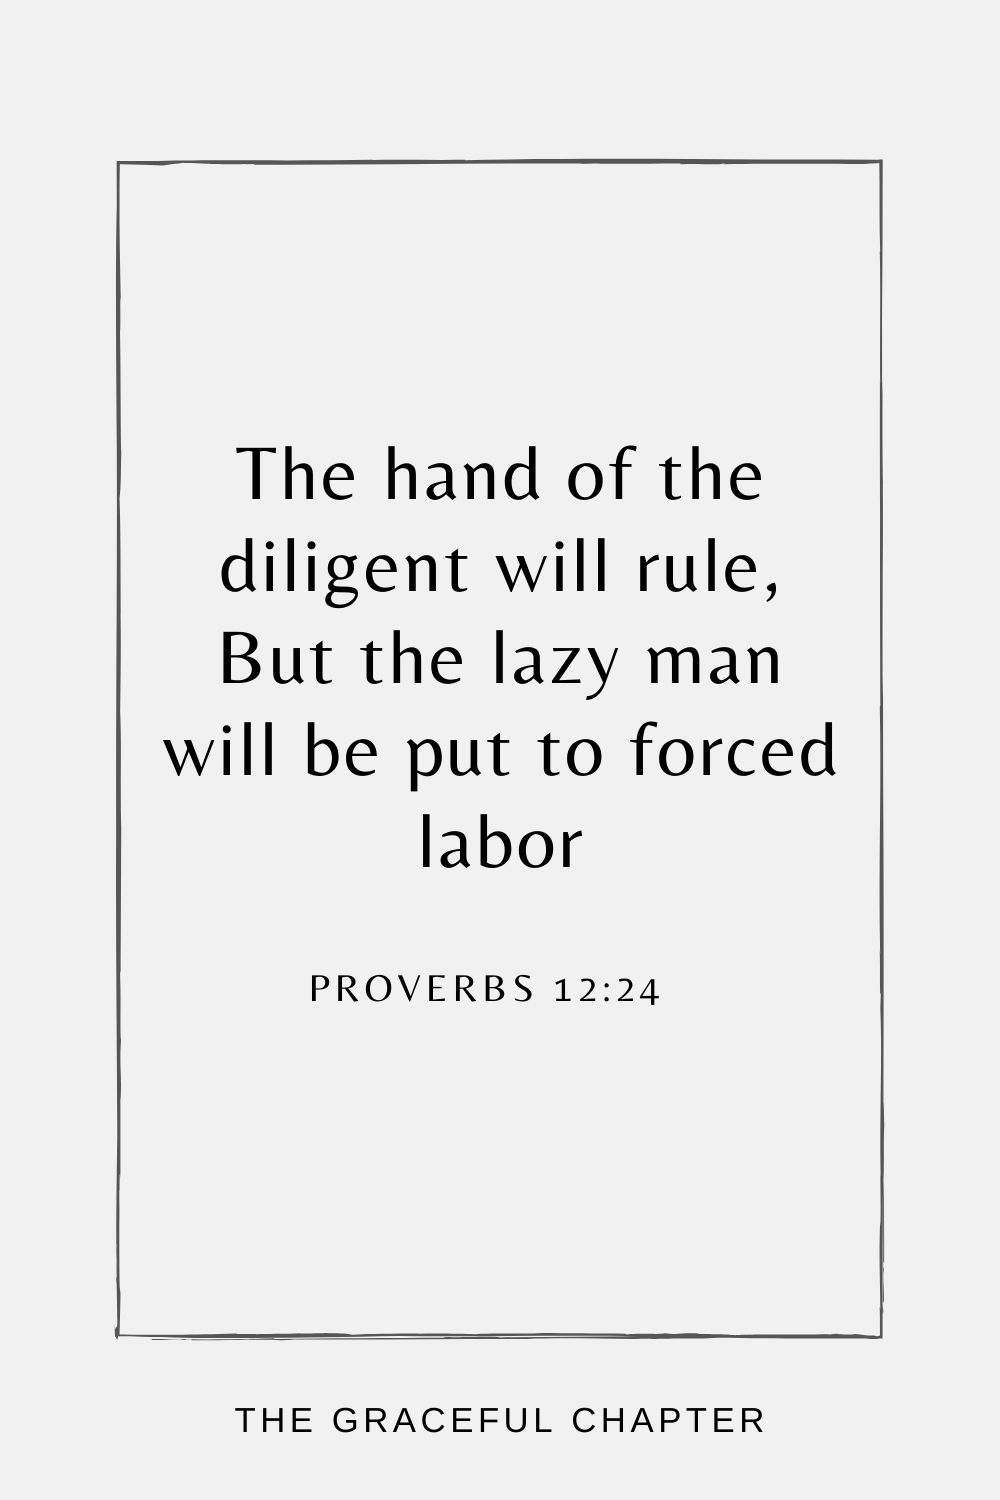 The hand of the diligent will rule, But the lazy man will be put to forced labor Proverbs 12:24